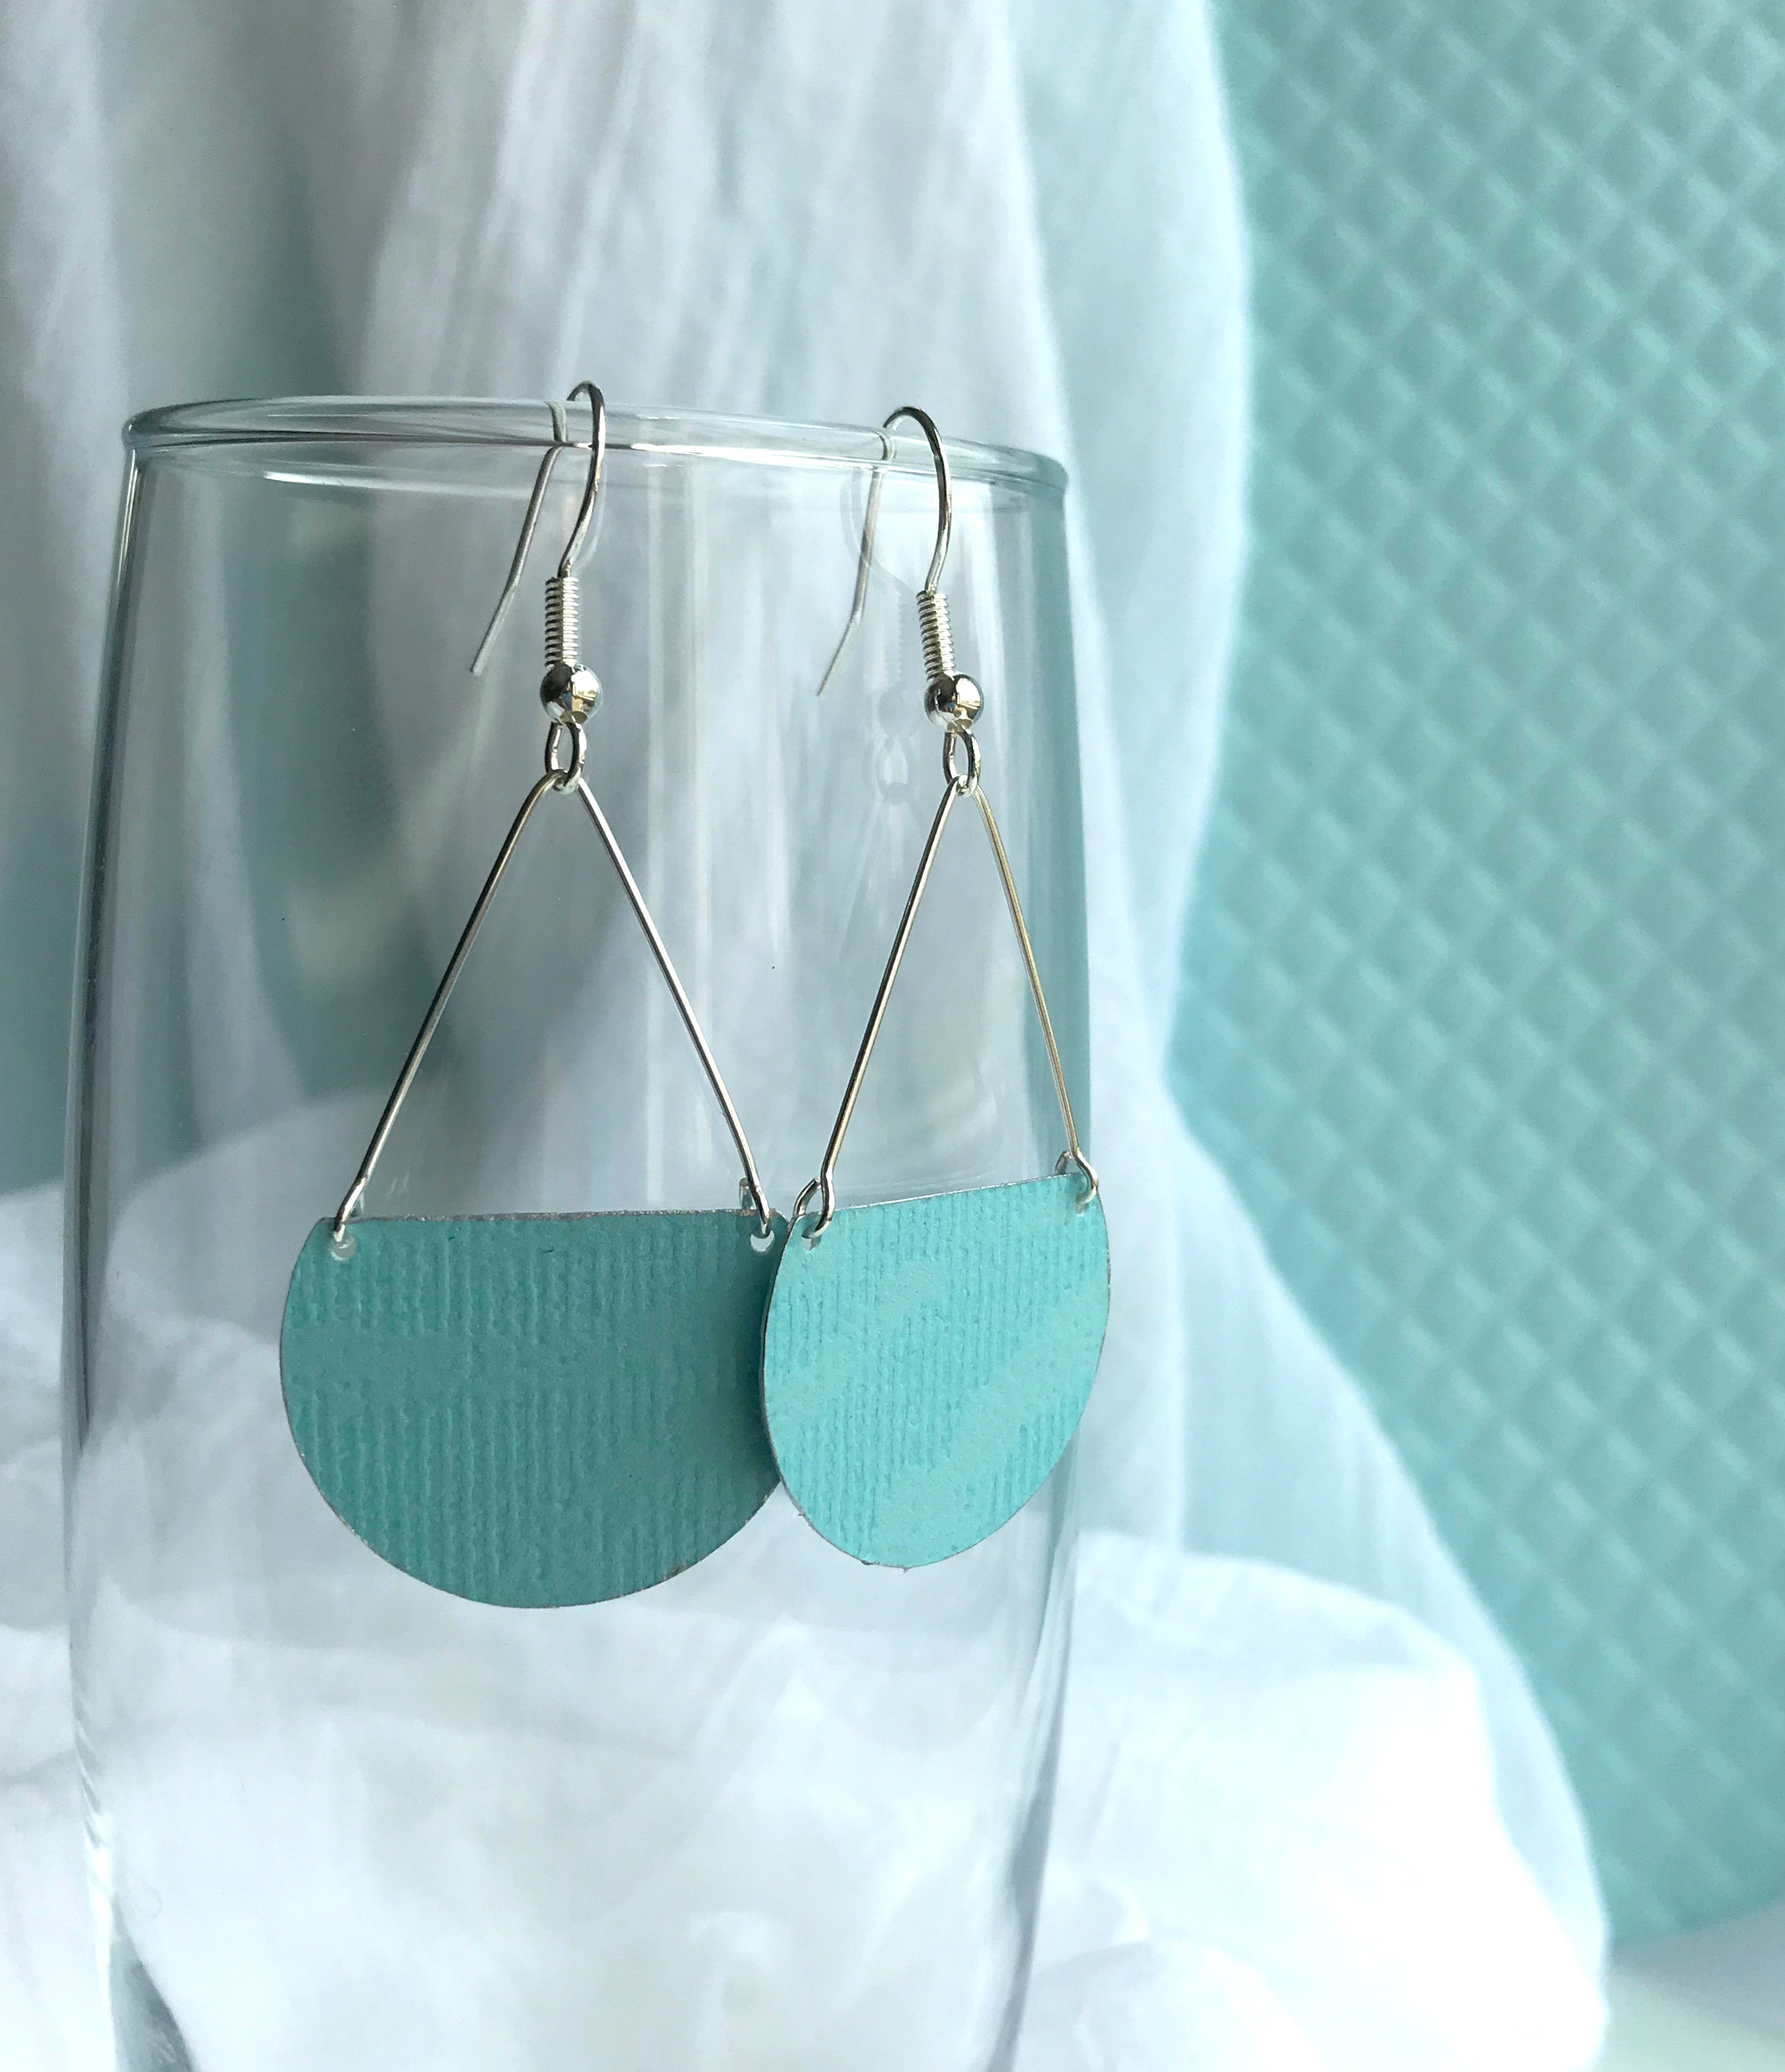 Gracie Nicole Handmade Jewelry. Flirty lightweight Aqua Semicircle Earrings